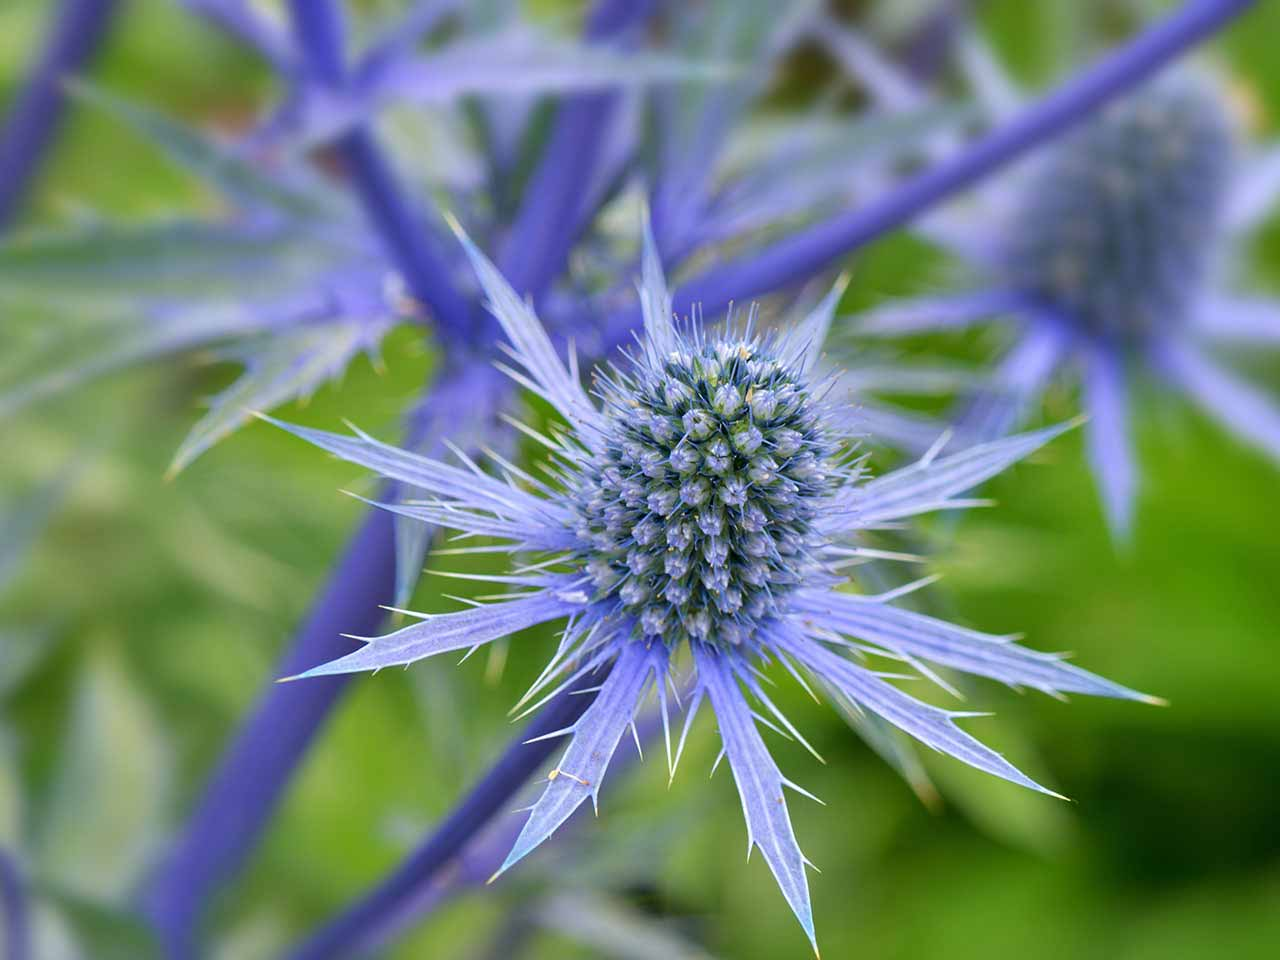 Eryngium planum Blue Sea Holly in garden